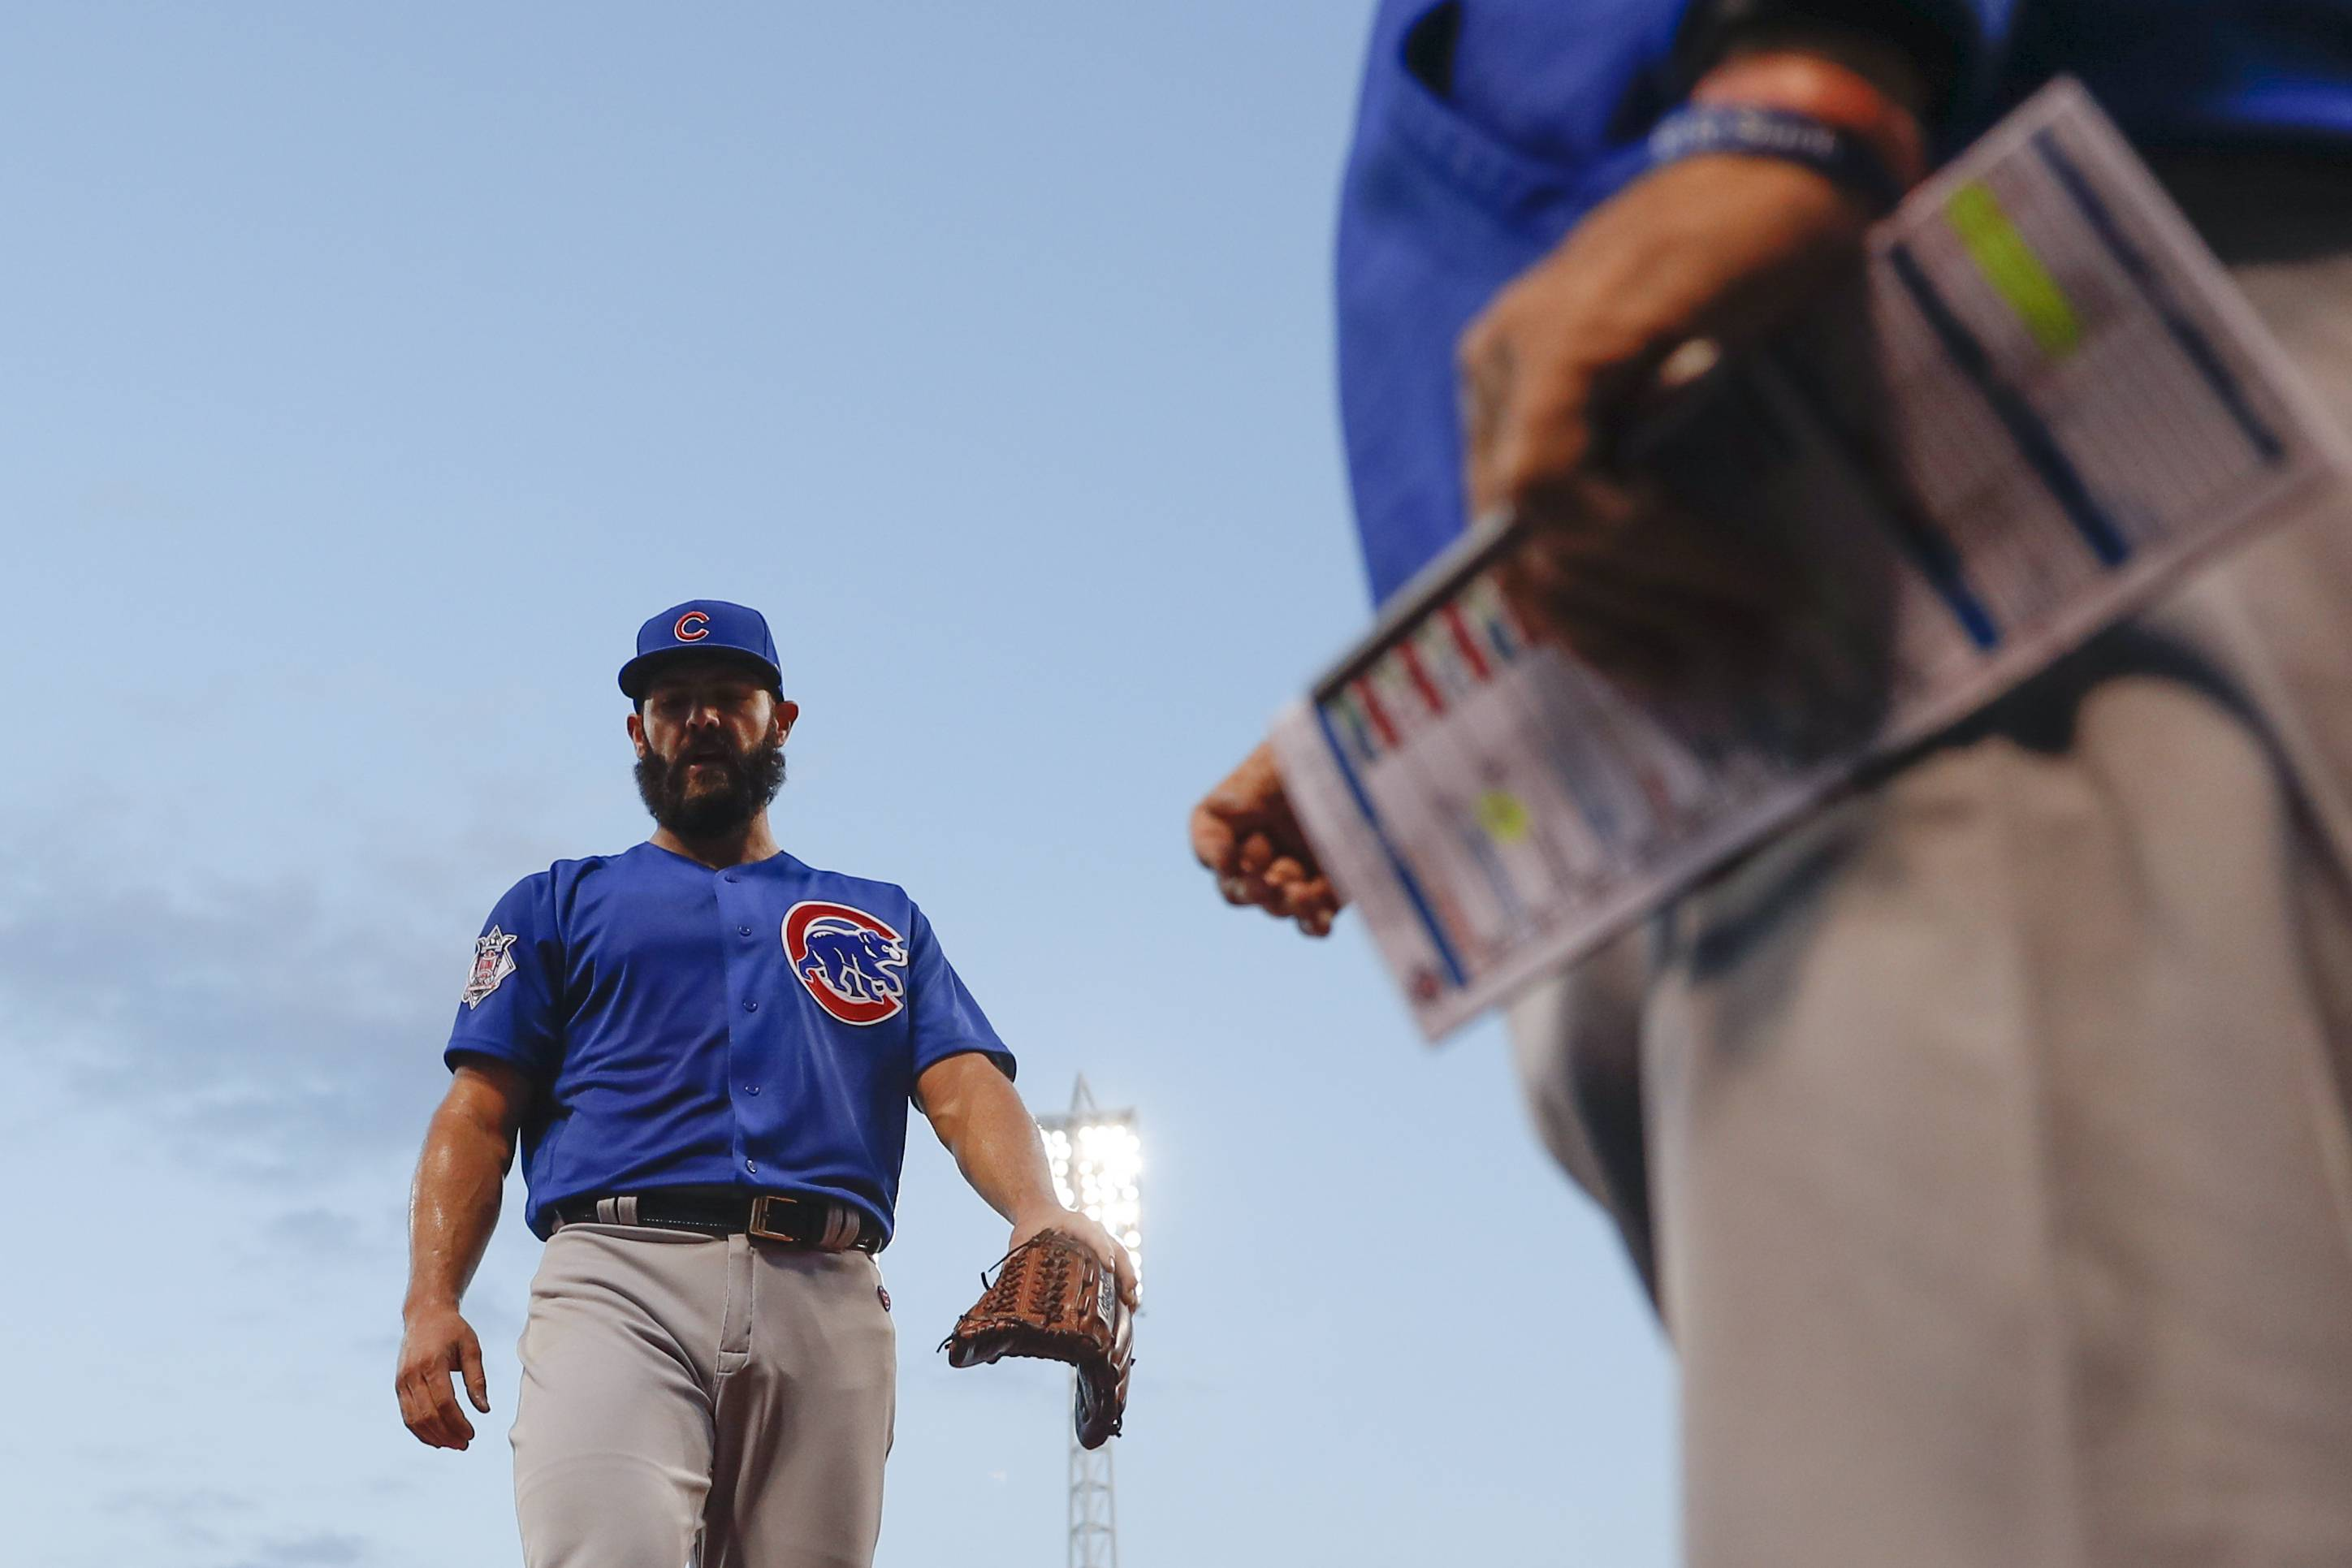 Chicago Cubs starting pitcher Jake Arrieta walks back to the dugout after the fourth inning of the team's baseball game against the Cincinnati Reds, Thursday, Aug. 24, 2017, in Cincinnati.